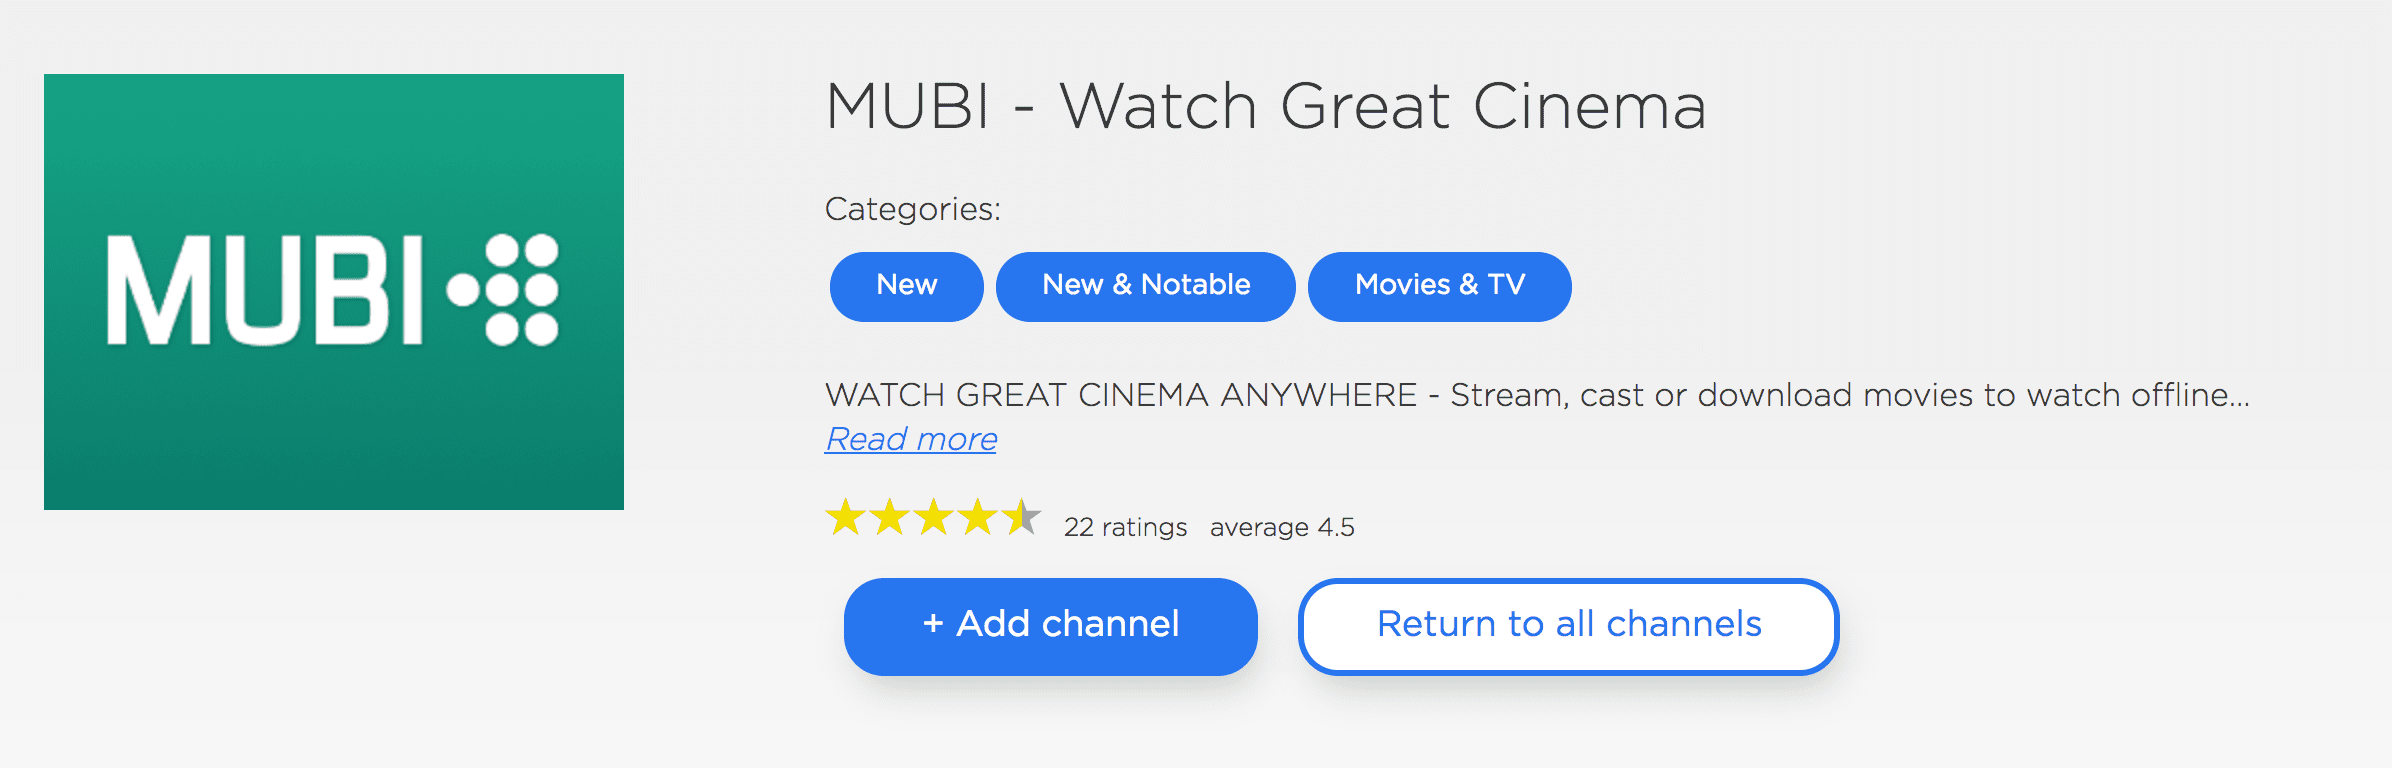 MUBI on Roku website